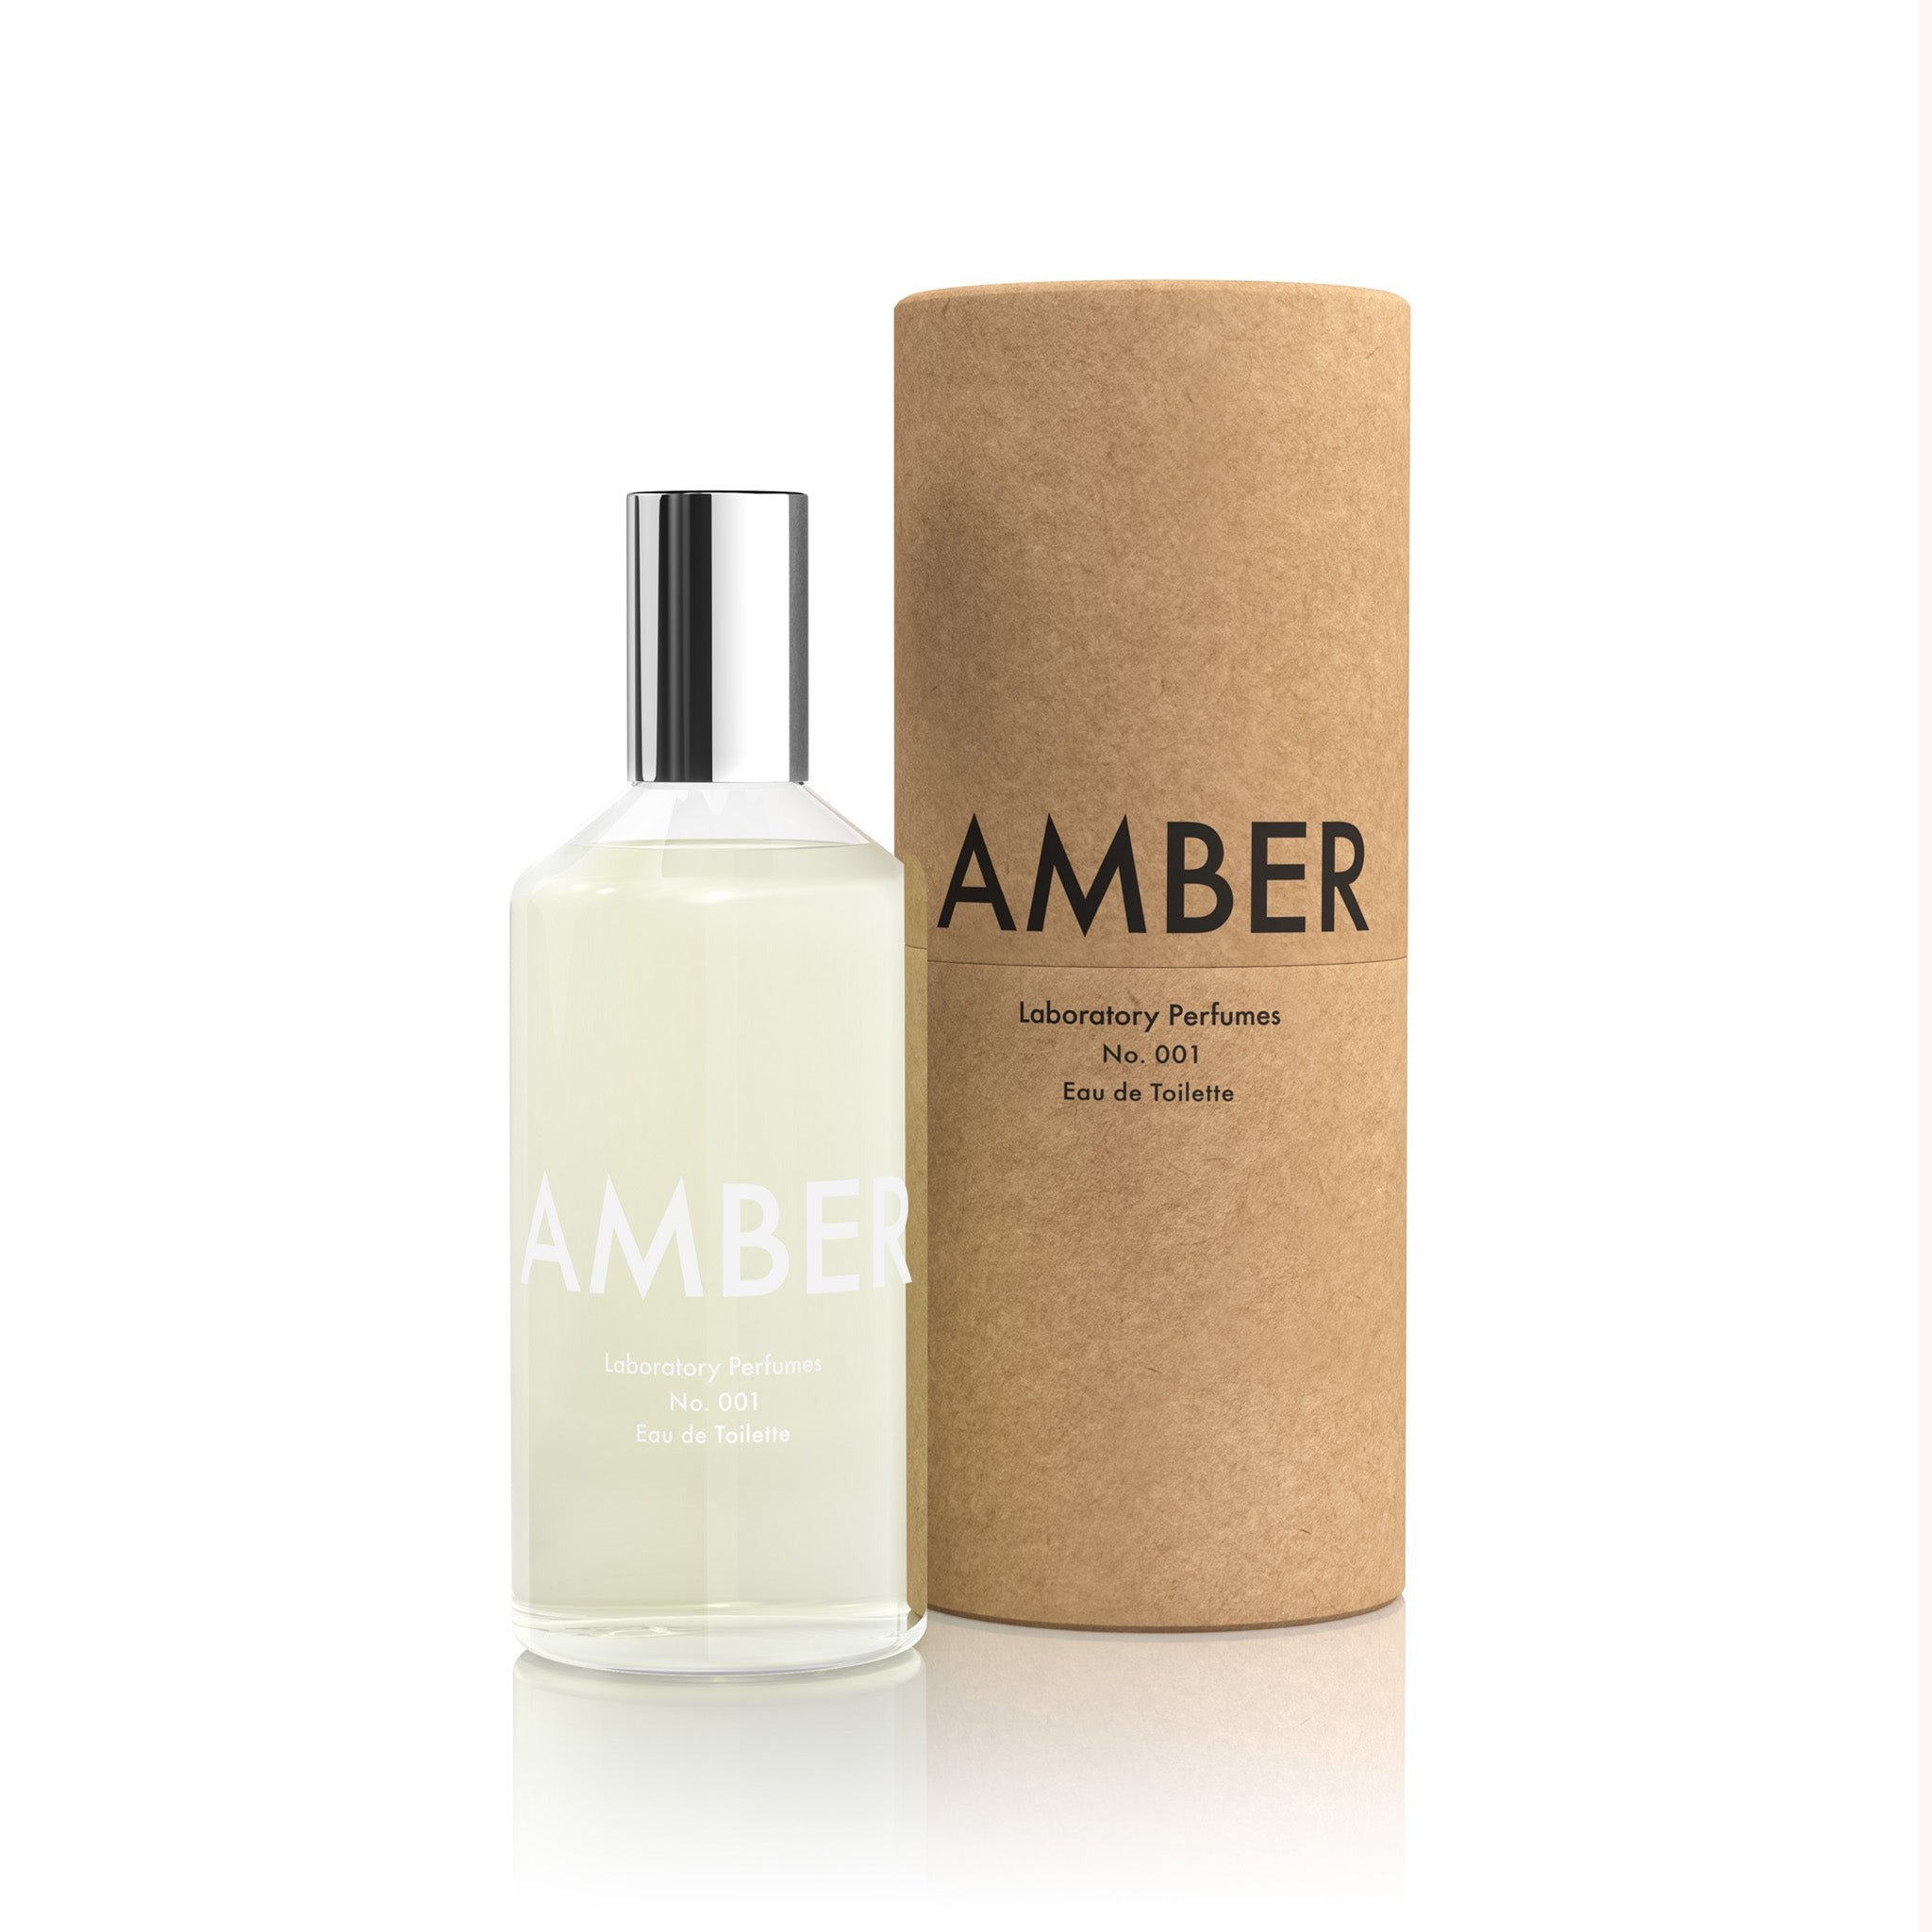 Laboratory Fragrance | Amber